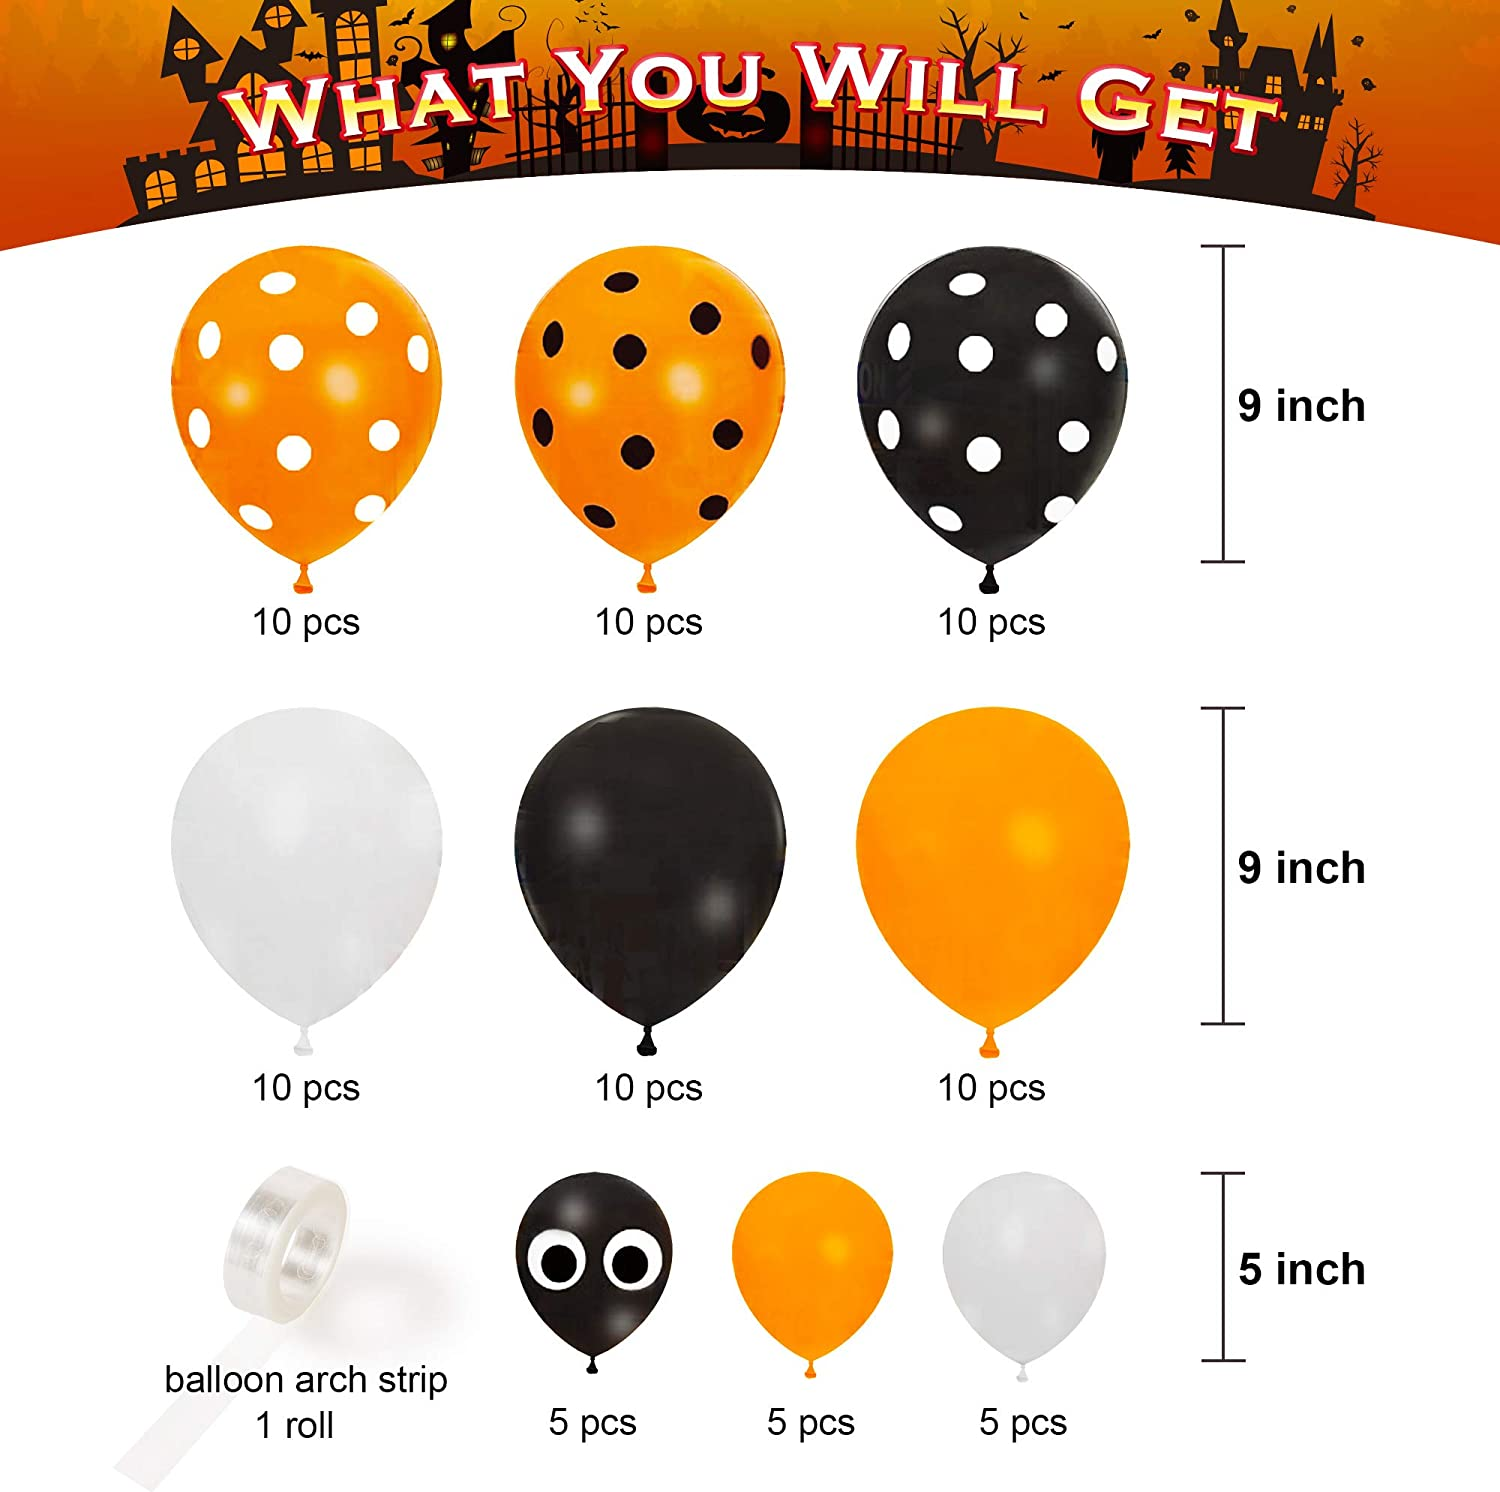 Halloween Garland Decorations Black and Orange Balloons White Balloons Total 91PCS Decorlife Orange and Black Balloons Arch Kit Balloon Strip Tape Included